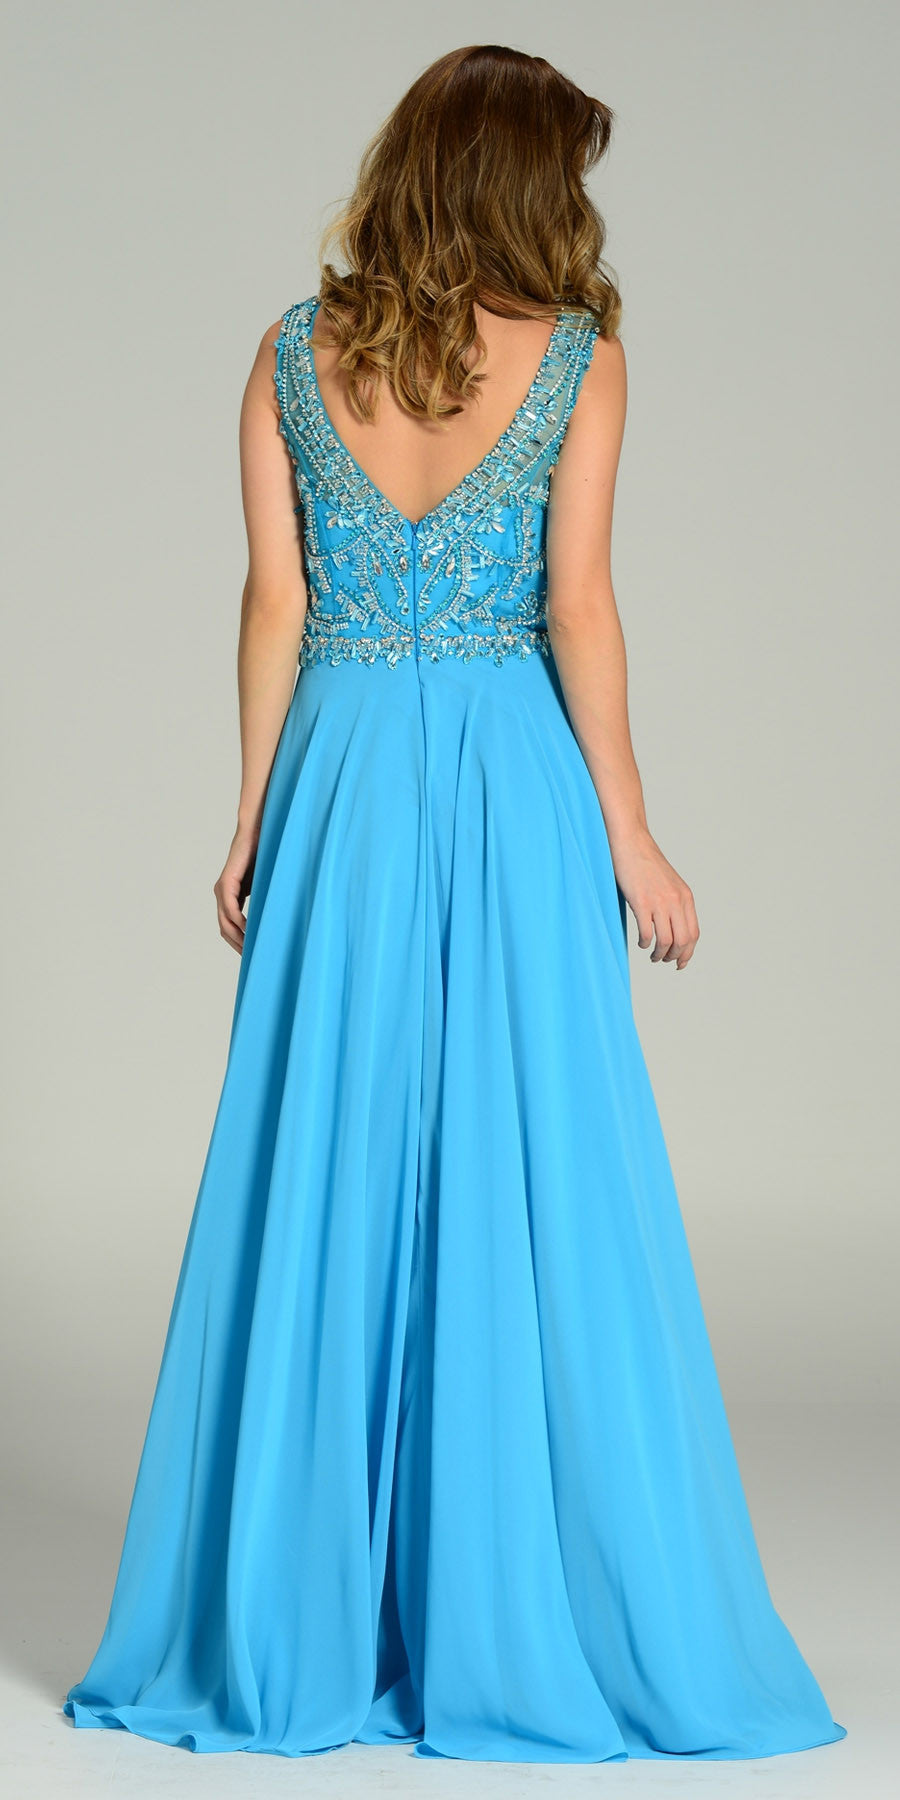 ON SPECIAL LIMITED STOCK - Floor Length A Line Sky Blue Dress Chiffon/Mesh Rhinestone Bodice